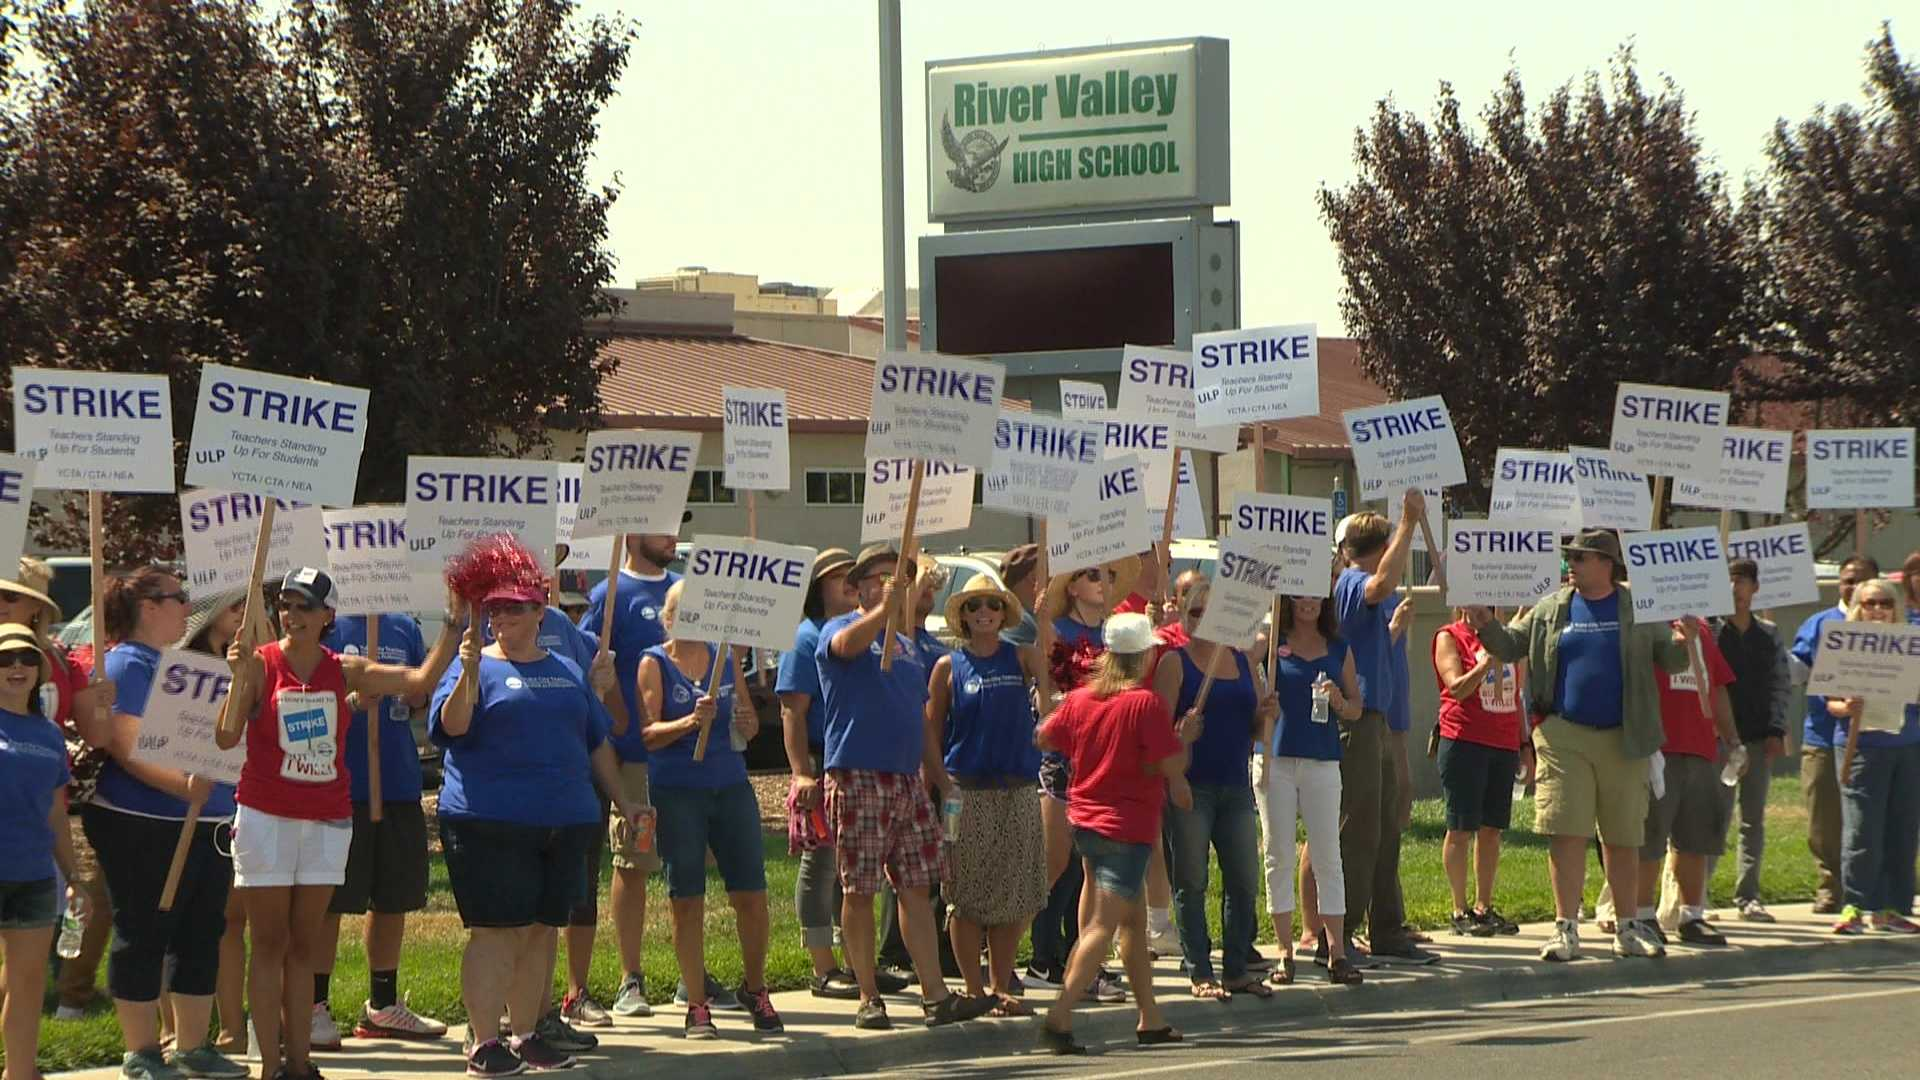 Yuba City schools teachers are on strike after wage negotiations with the district broke down.